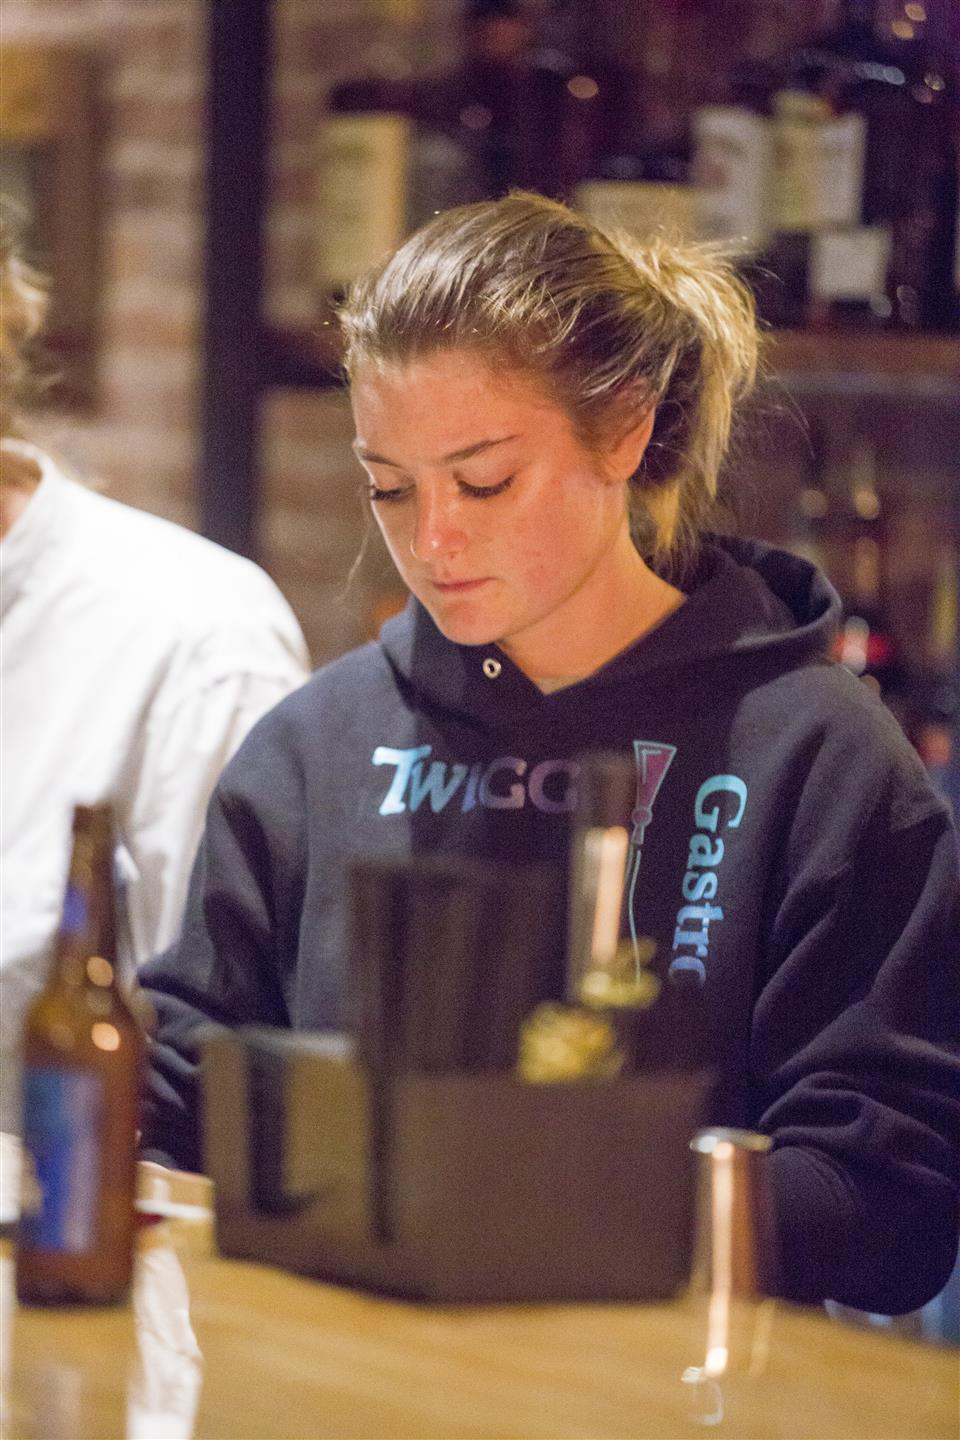 a woman at the bar